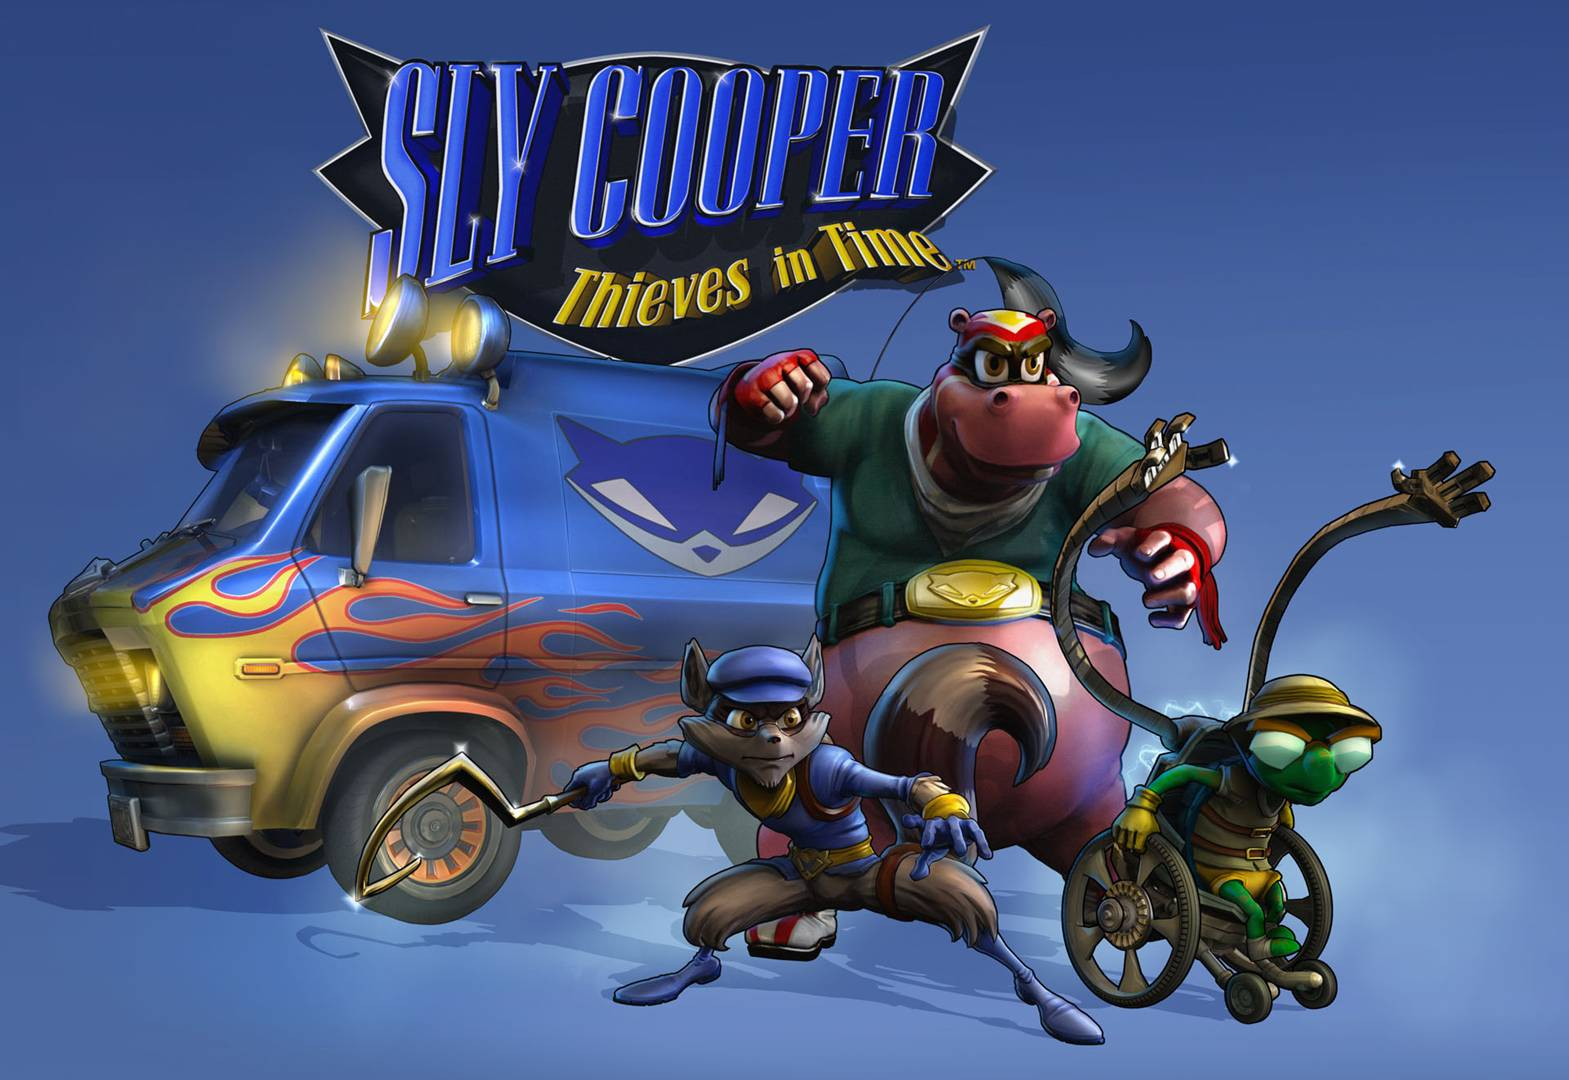 Sly Cooper Thieves in Time hd wallpaper GamingBoltcom Video Game 1569x1080